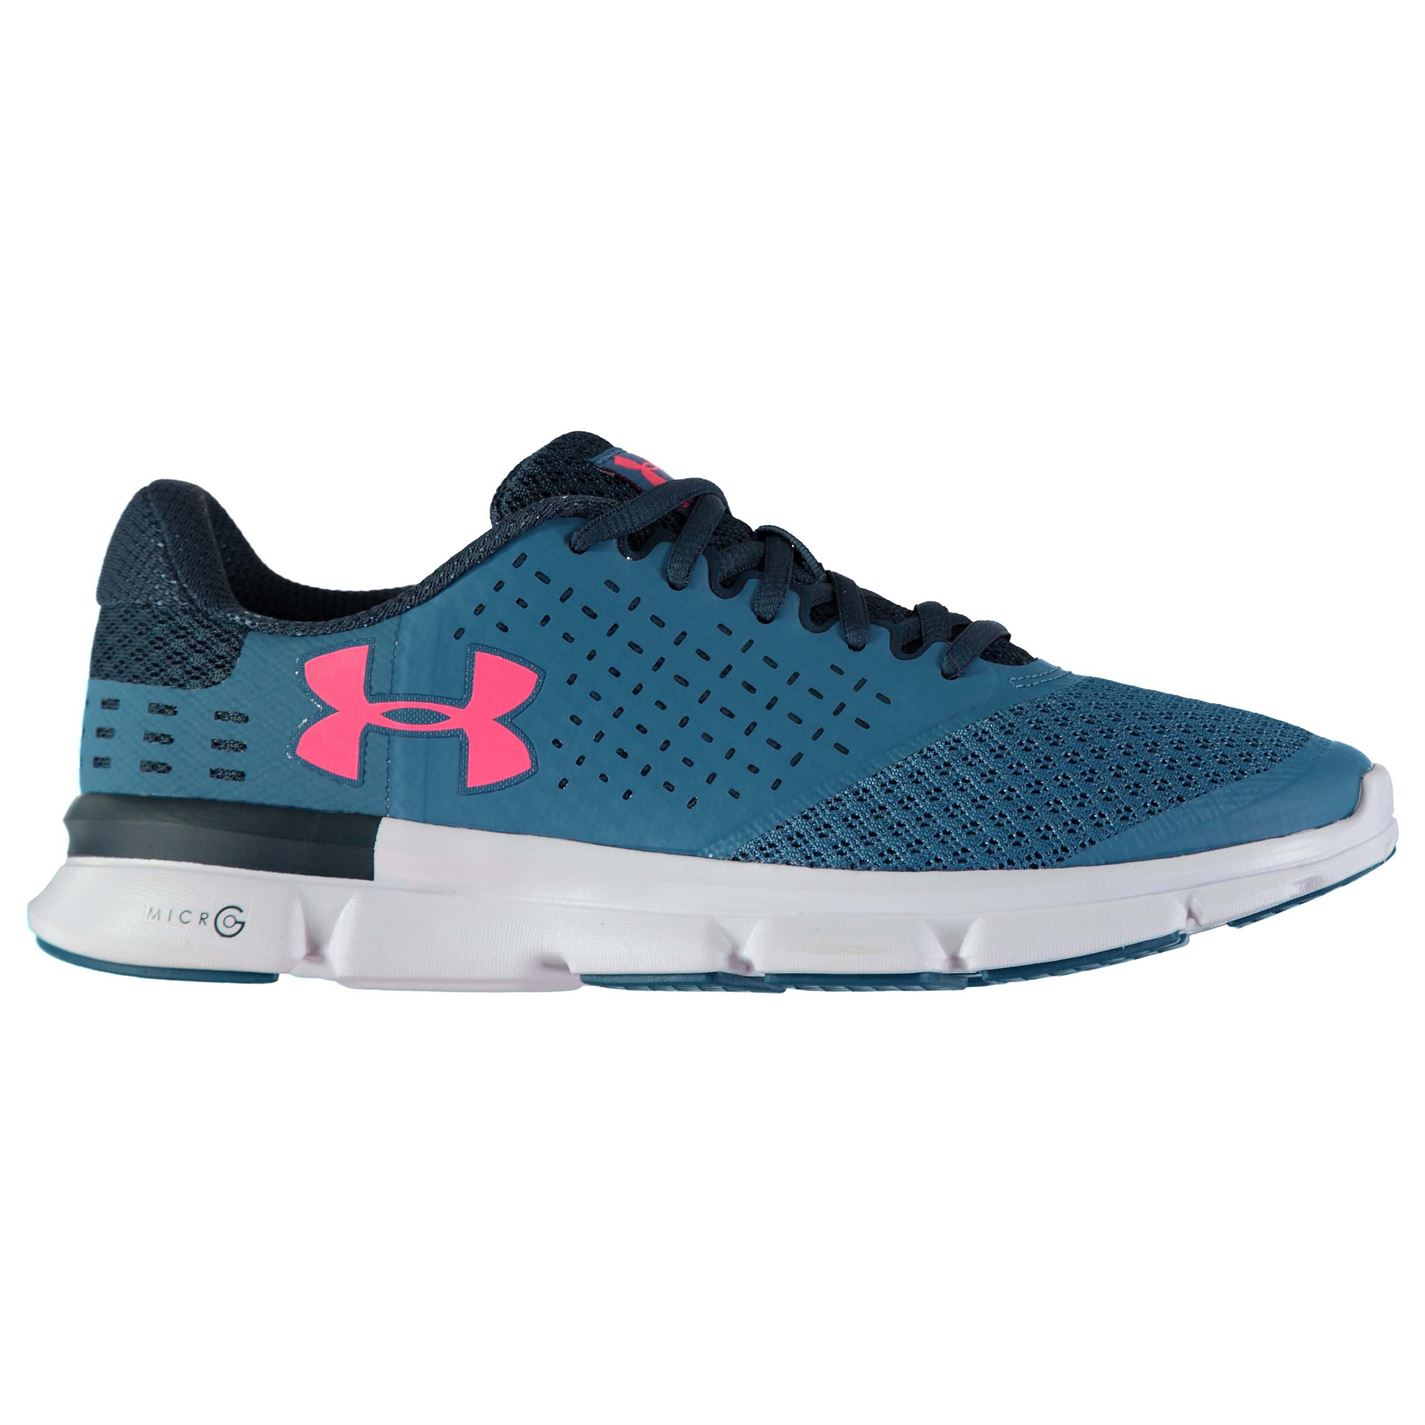 boty Under Armour Speed Swift 2 Ld74 Blue Pink - Glami.cz ceb354c930